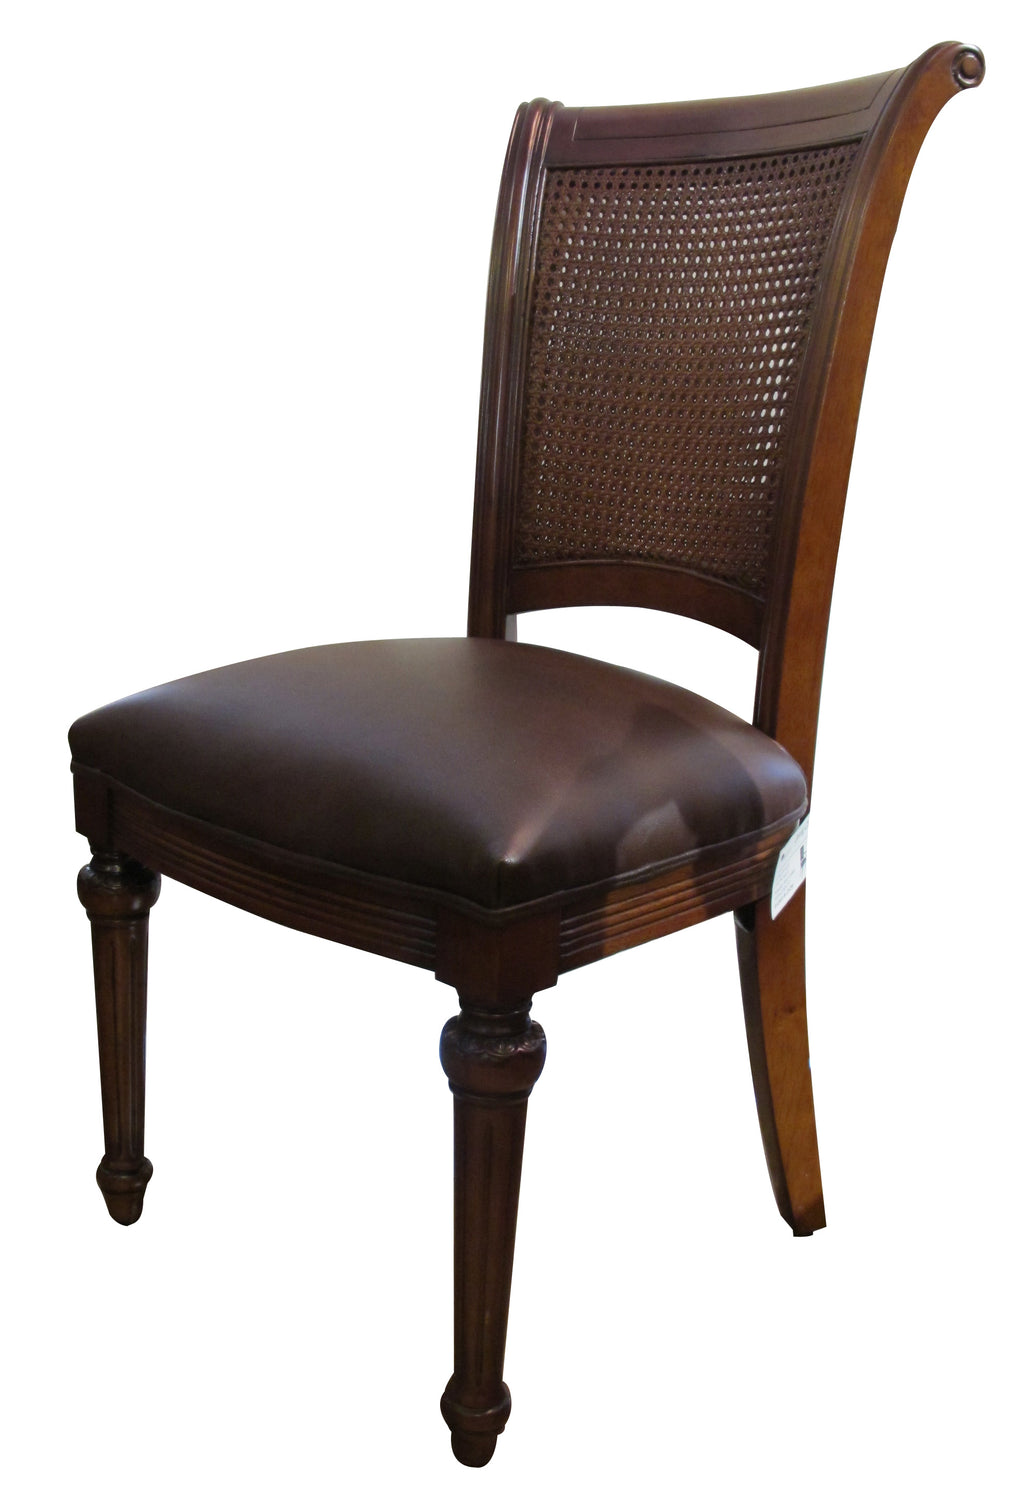 Canes Leather side chair w rattan back